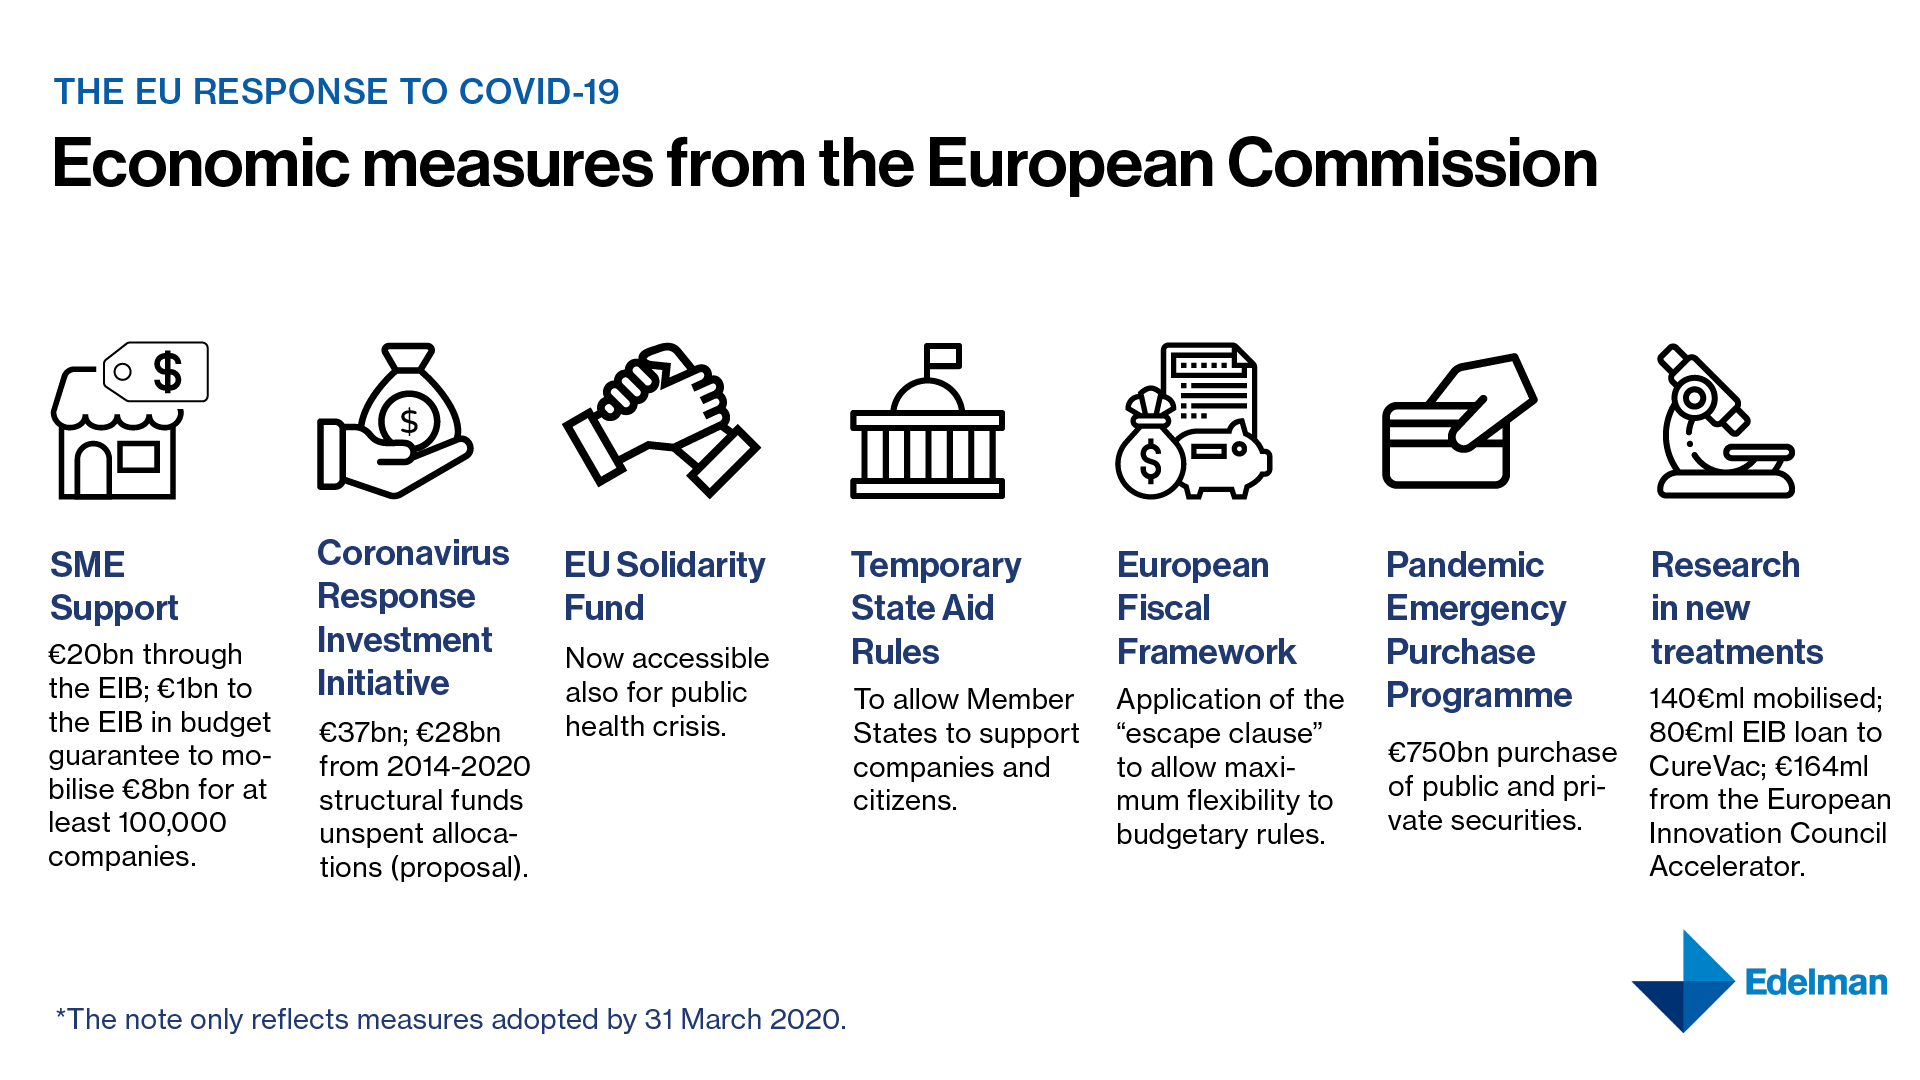 Economic Measures taken by the European Commission